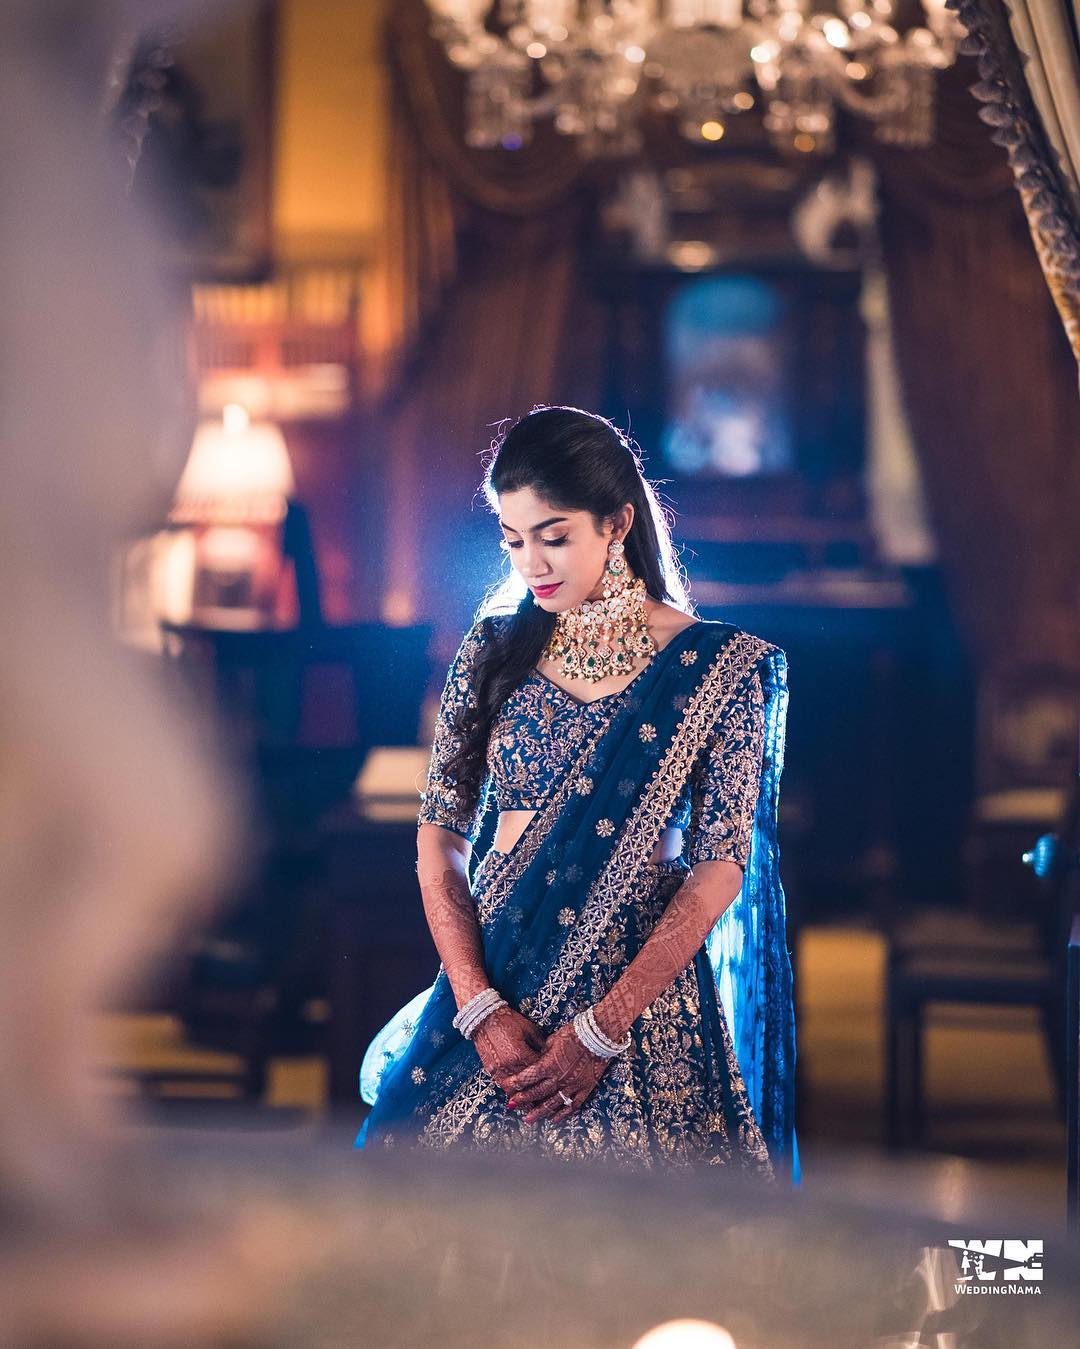 Wedding Dress Ideas A Guide On Indian Wedding Dresses For Every Bride Popxo,Non Traditional Wedding Dresses For Older Brides